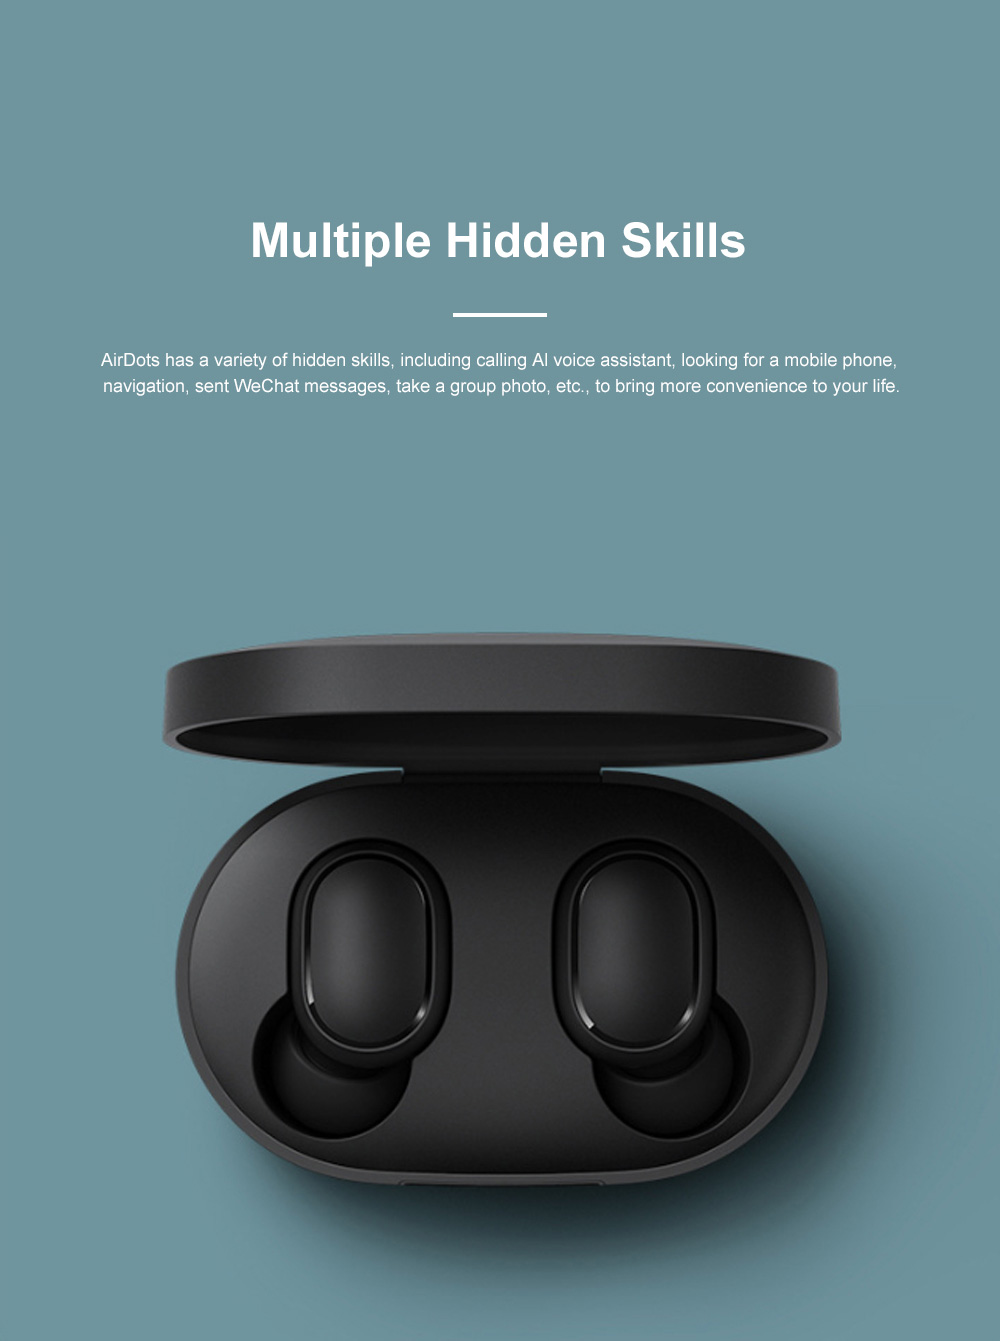 Redmi Airdots Bluetooth 5.0 Wireless Headset Fast Connecting Earphone with Charging Case and Voice Control 4